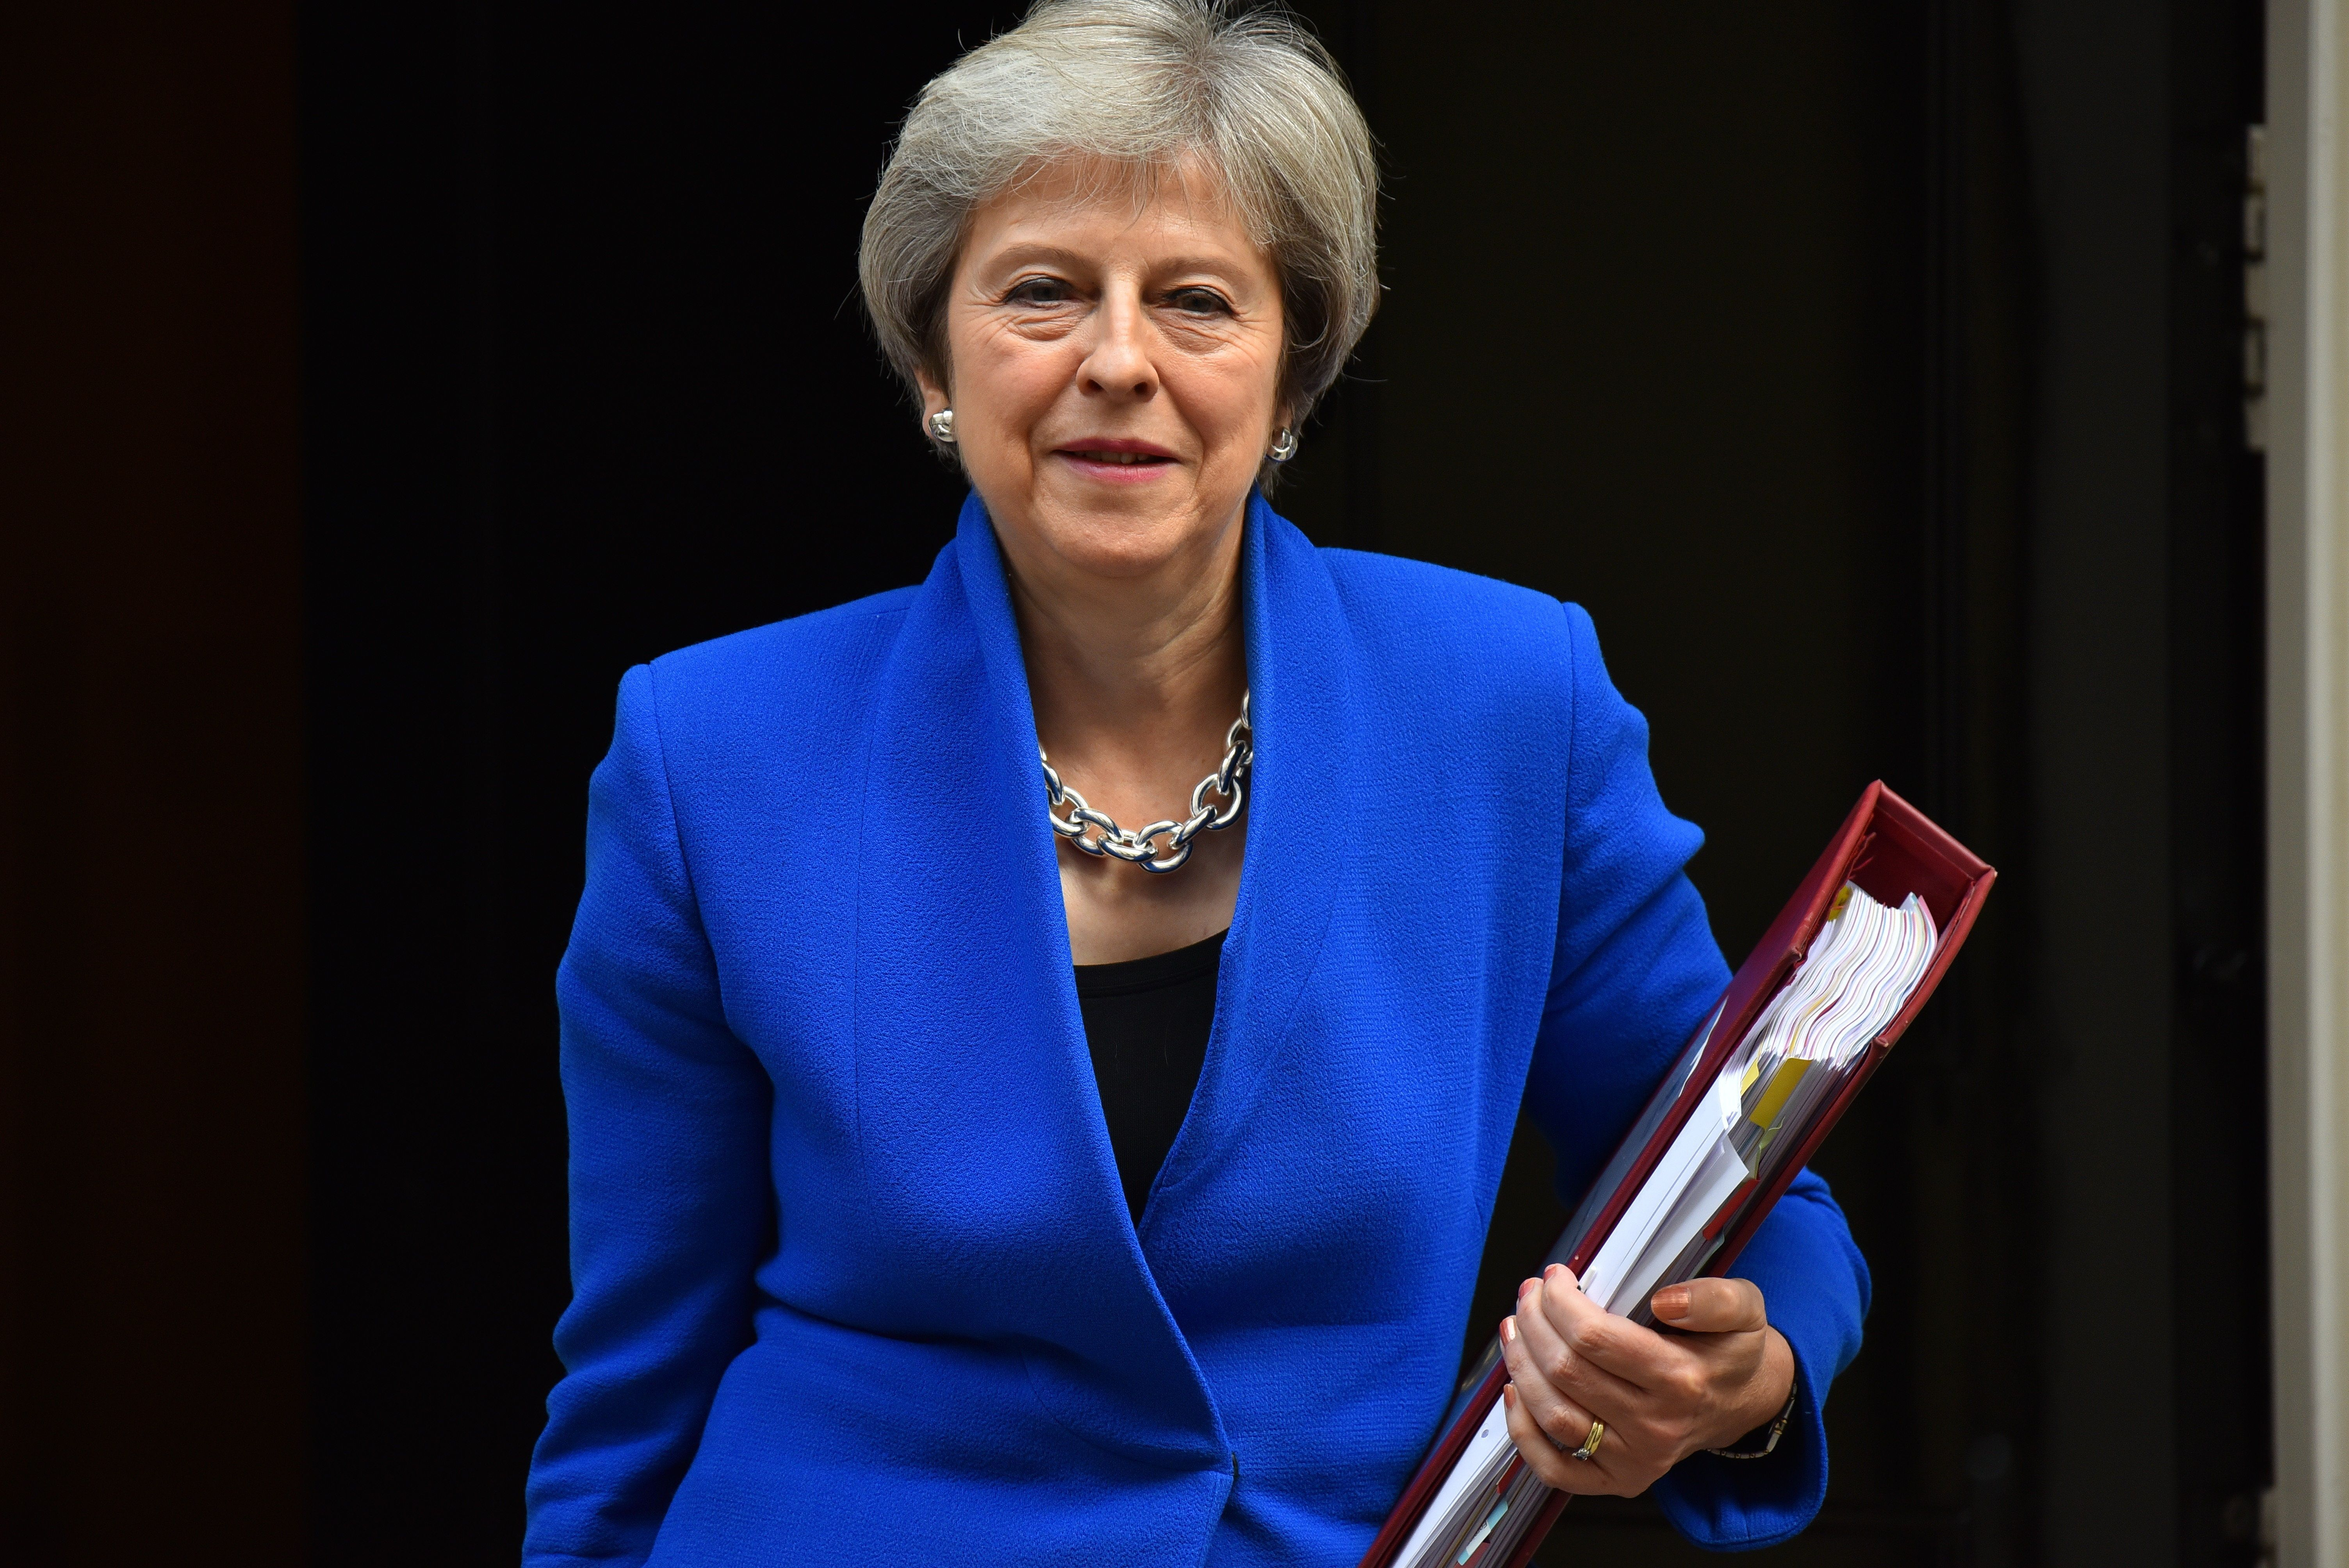 DUP say PM Brexit letter 'raises alarm bells' over union 'integrity'